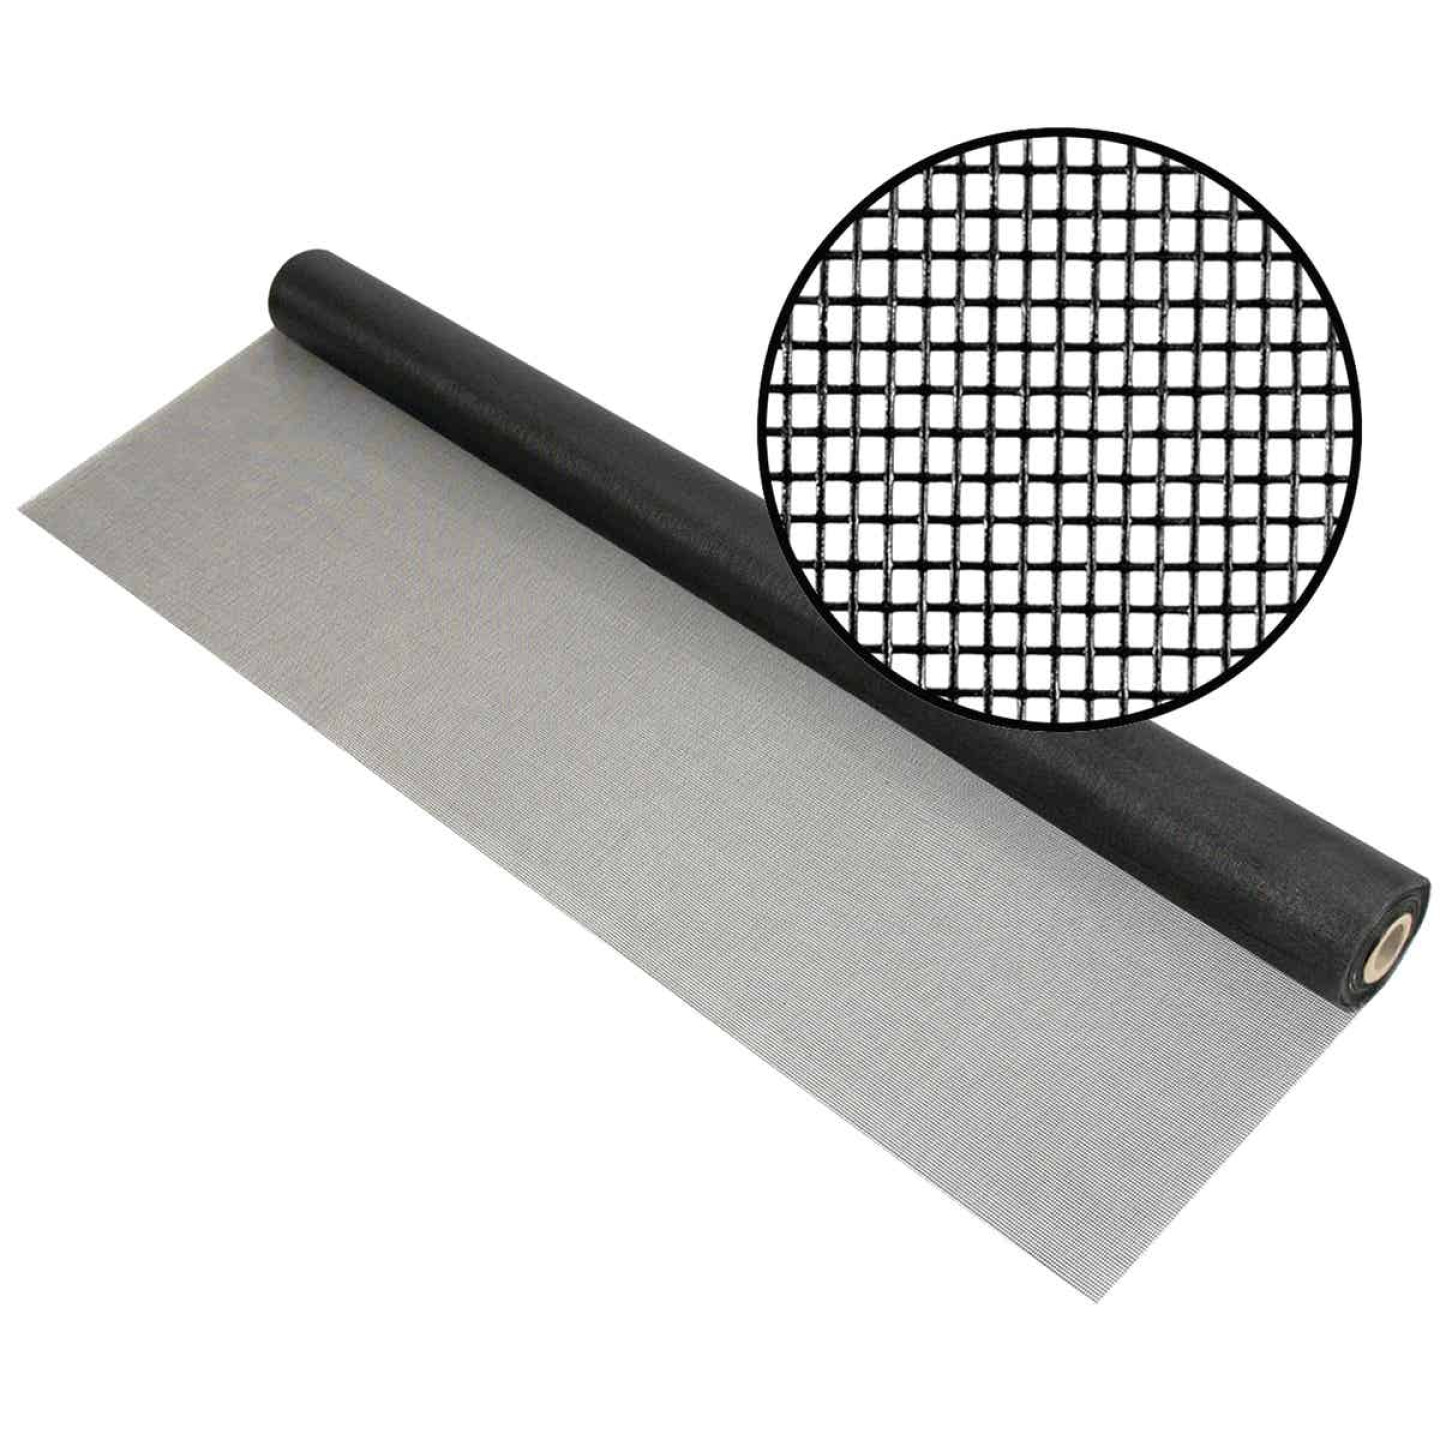 Phifer 72 In. x 100 Ft. Charcoal Fiberglass Pool Screen Image 1